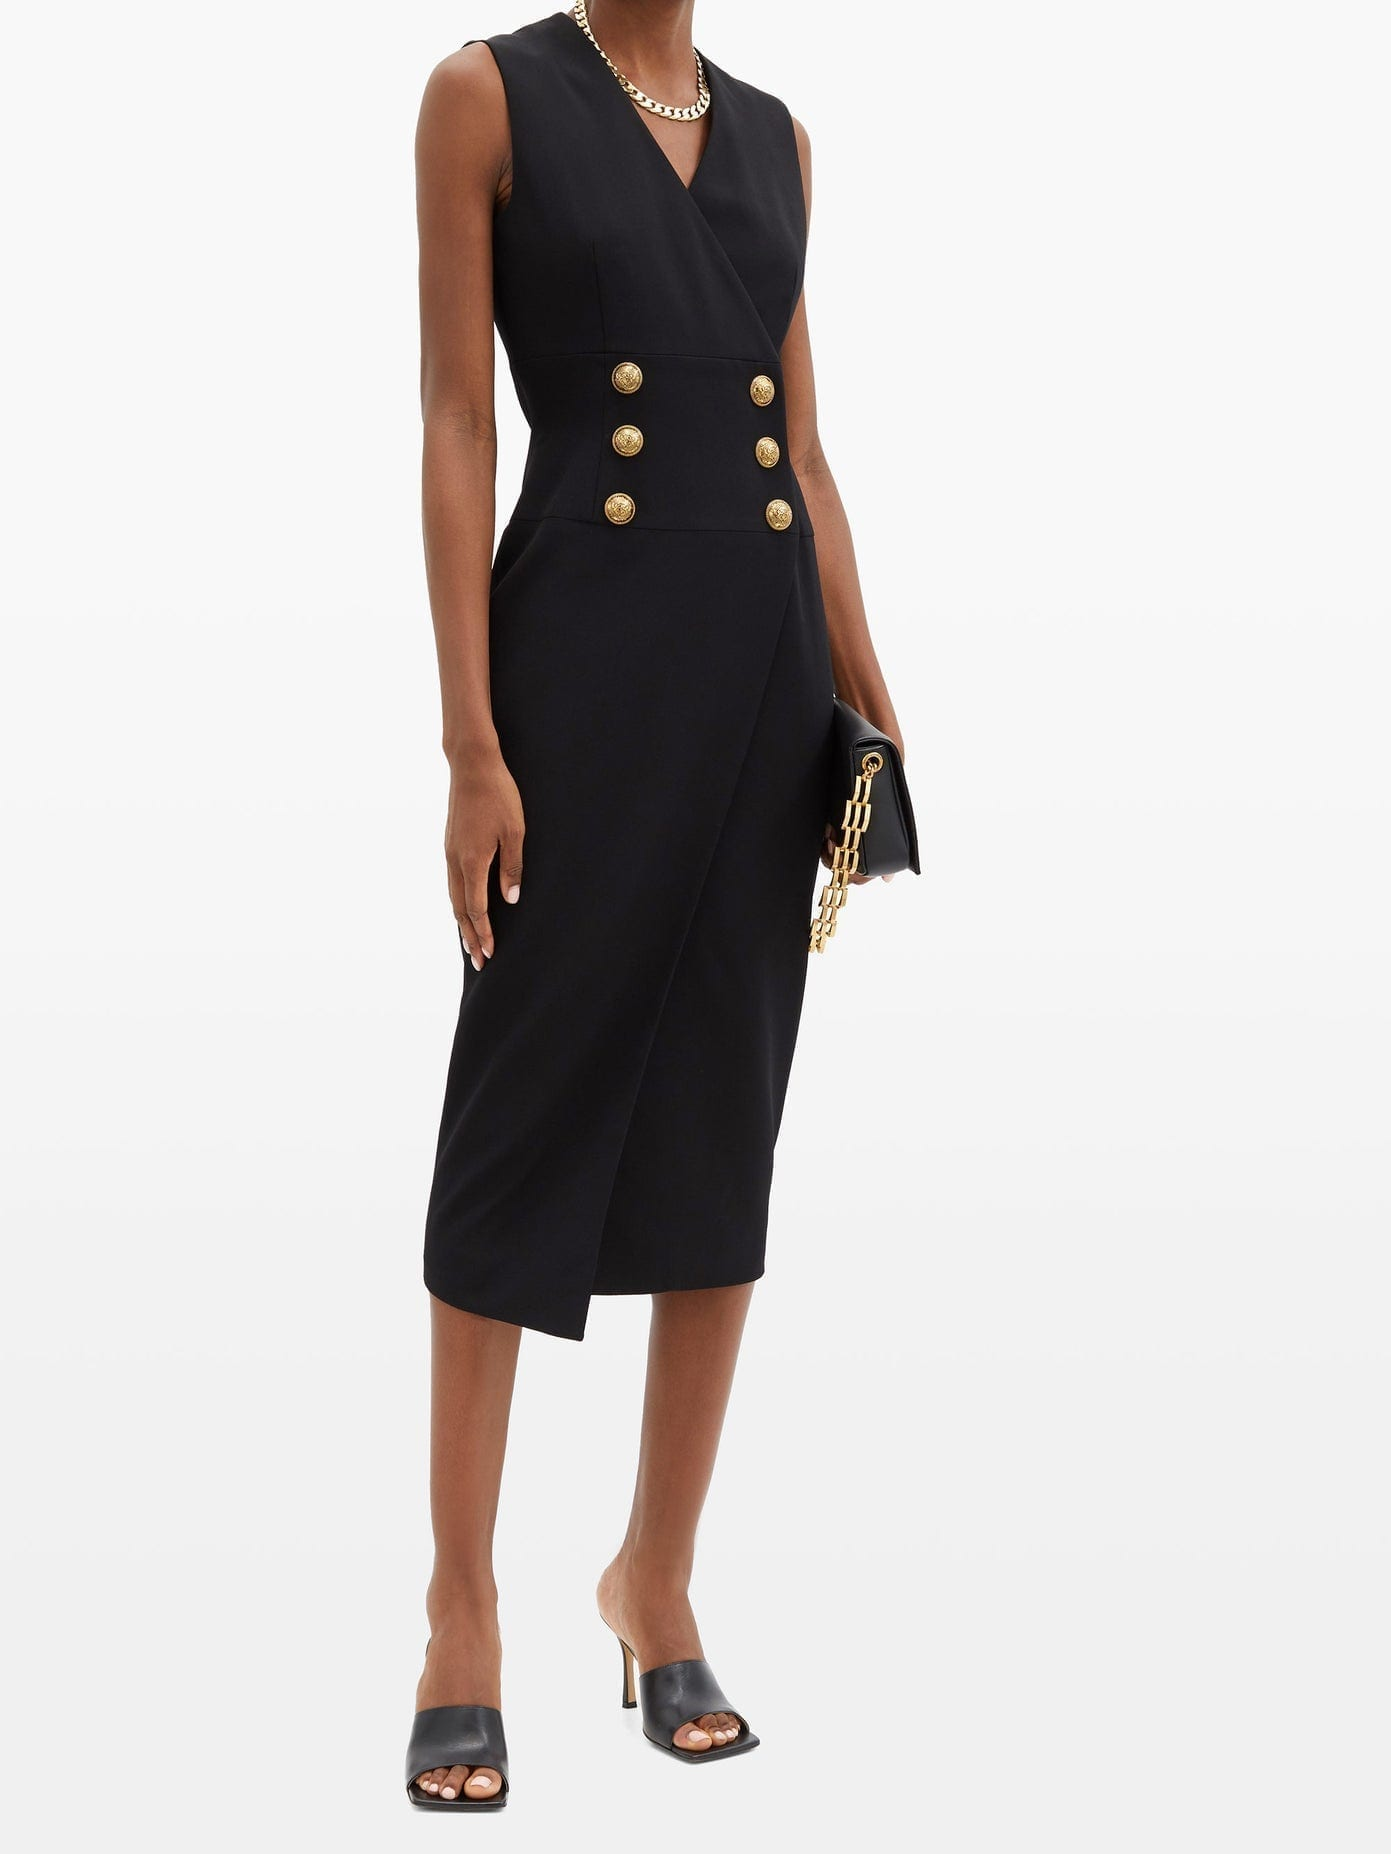 BALMAIN Tailored Buttoned Wrap Dress